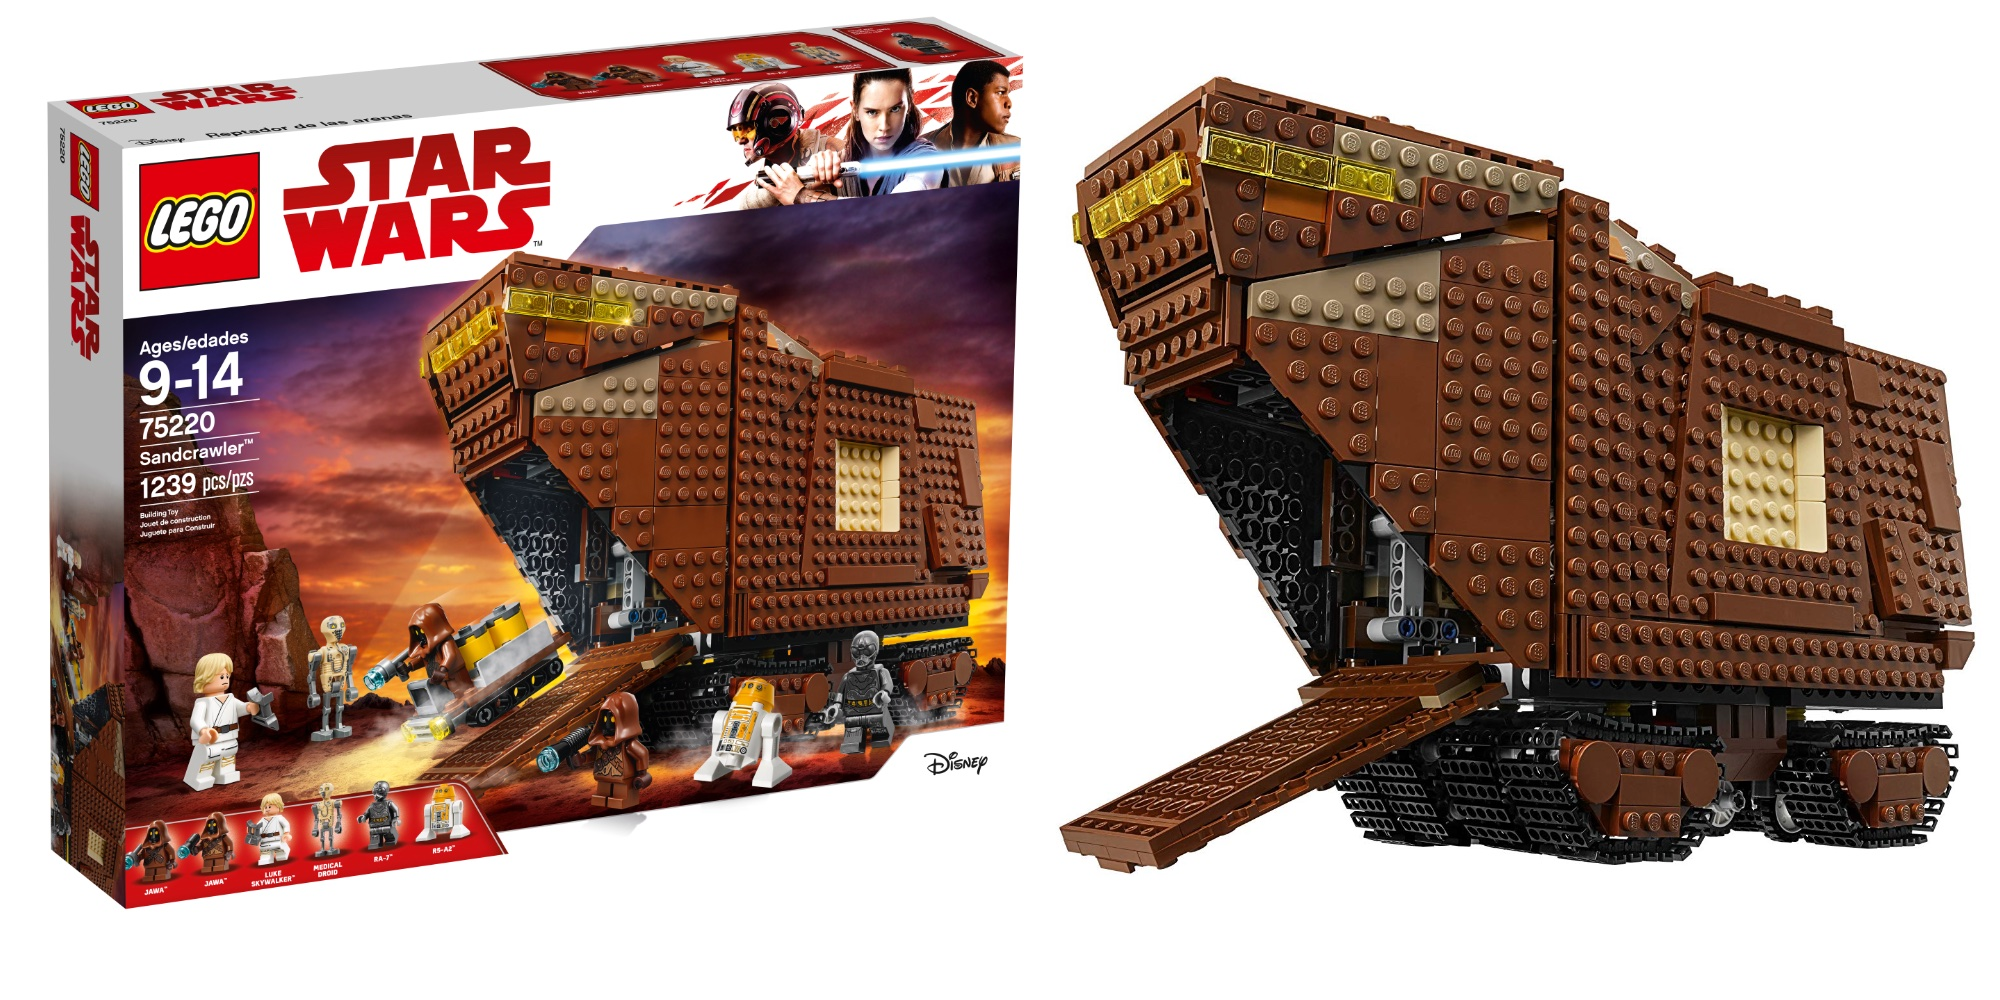 LEGO Star Wars Sandcrawler falls to best price in 2019 at